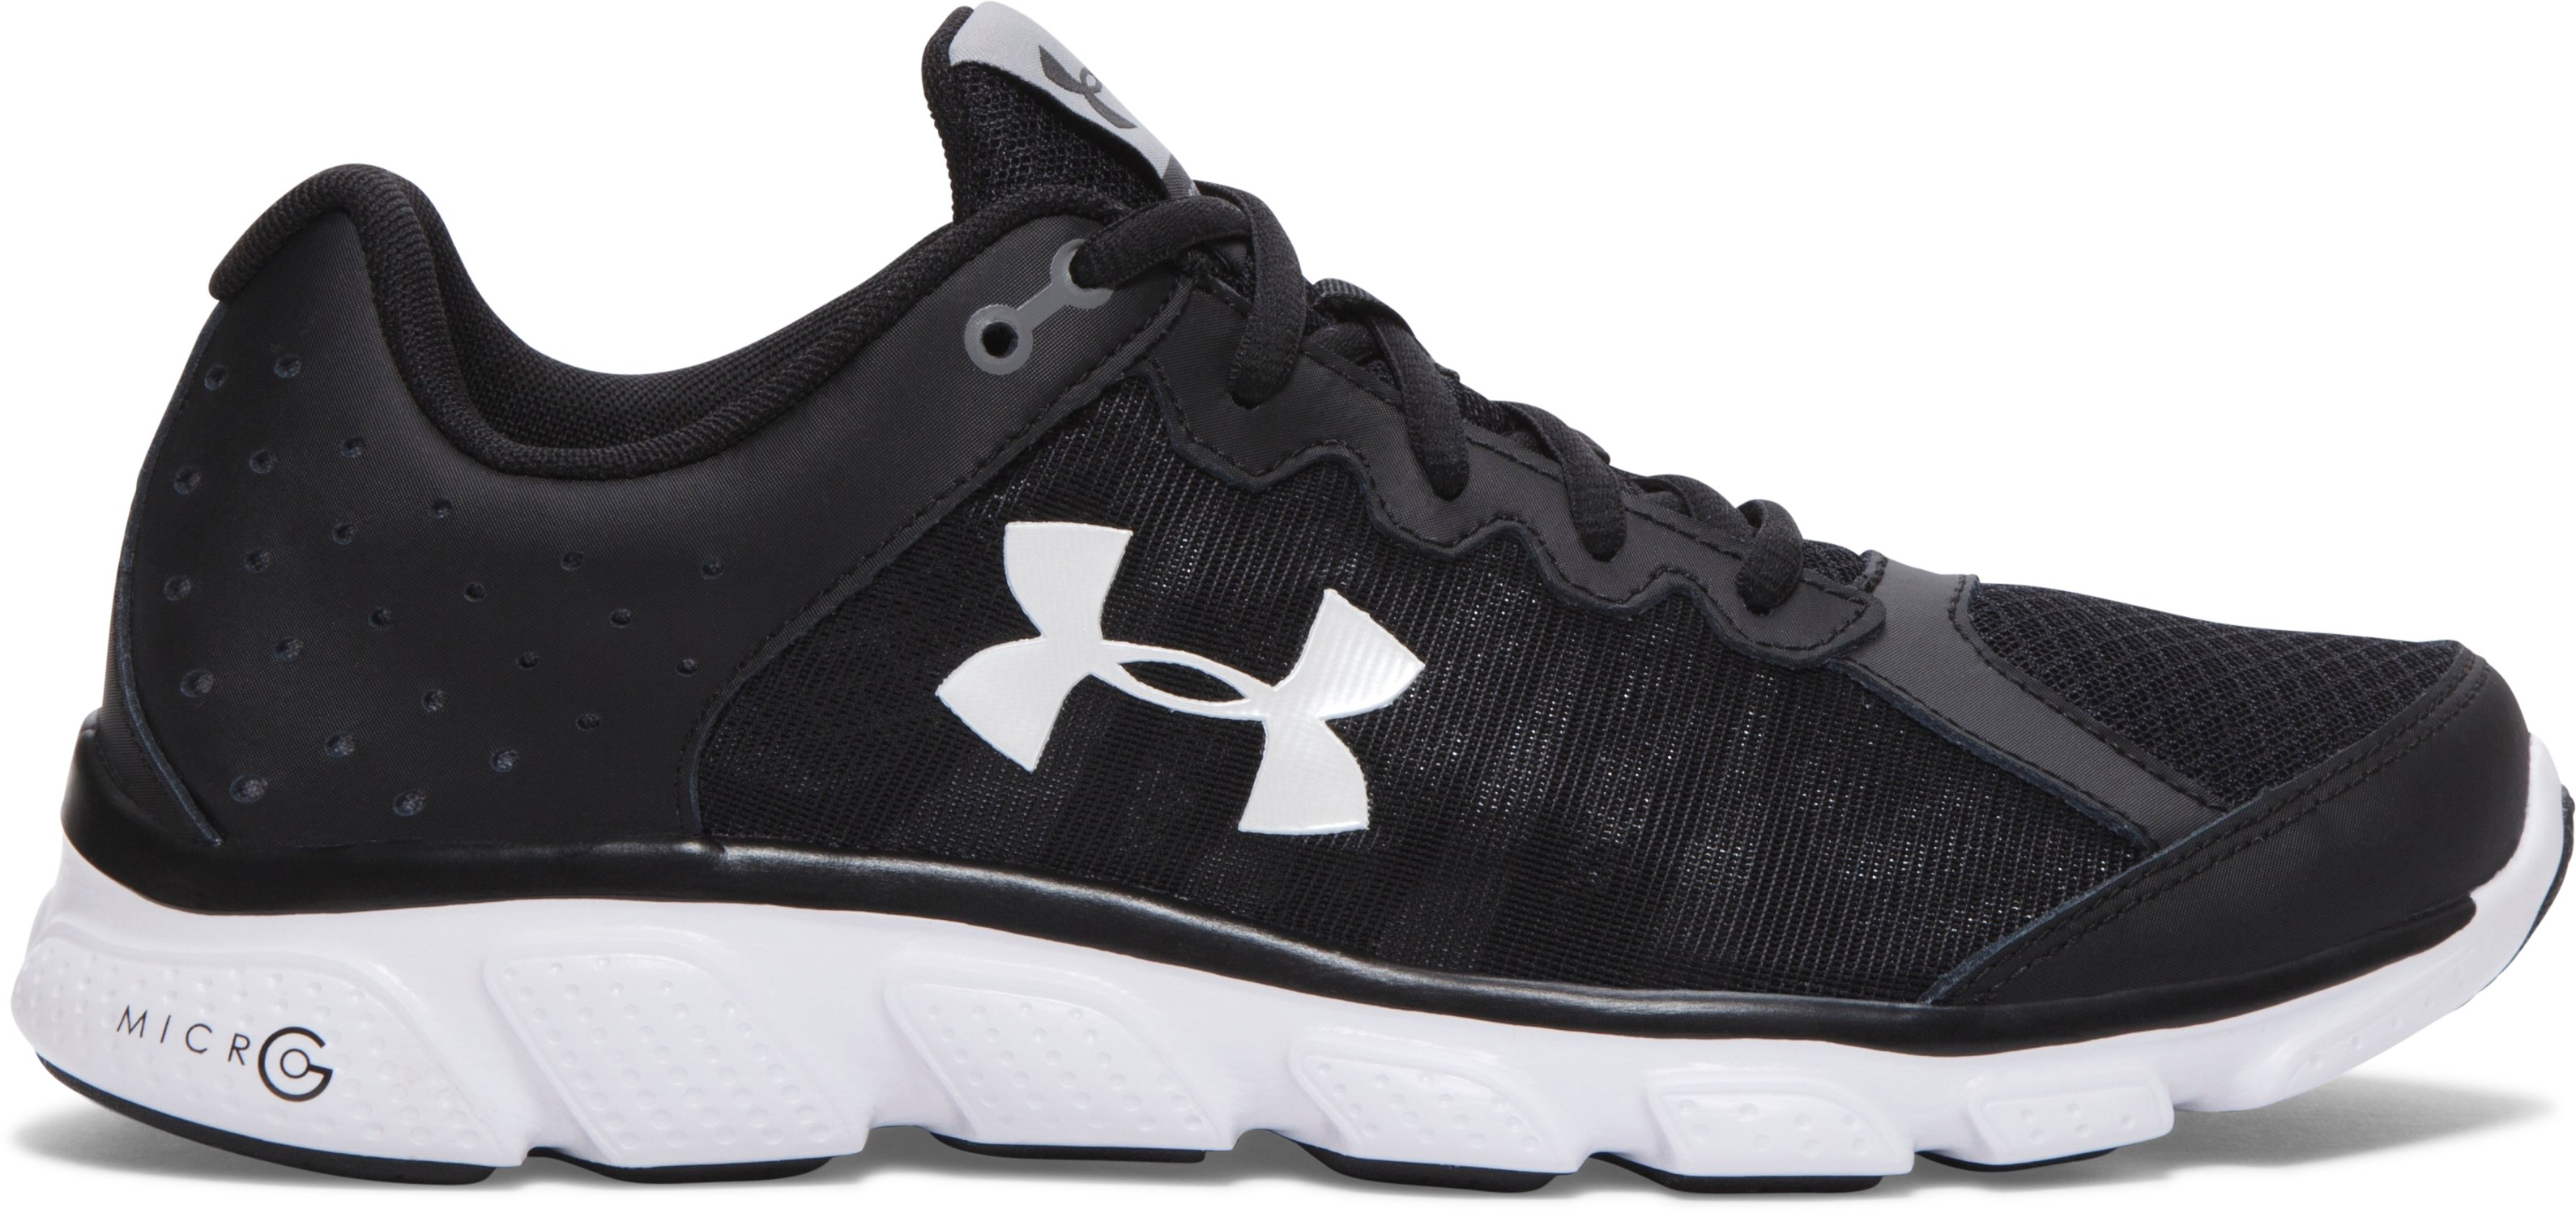 Men's UA Micro G® Assert 6 Running Shoes 2 Colors $52.49 - $52.99